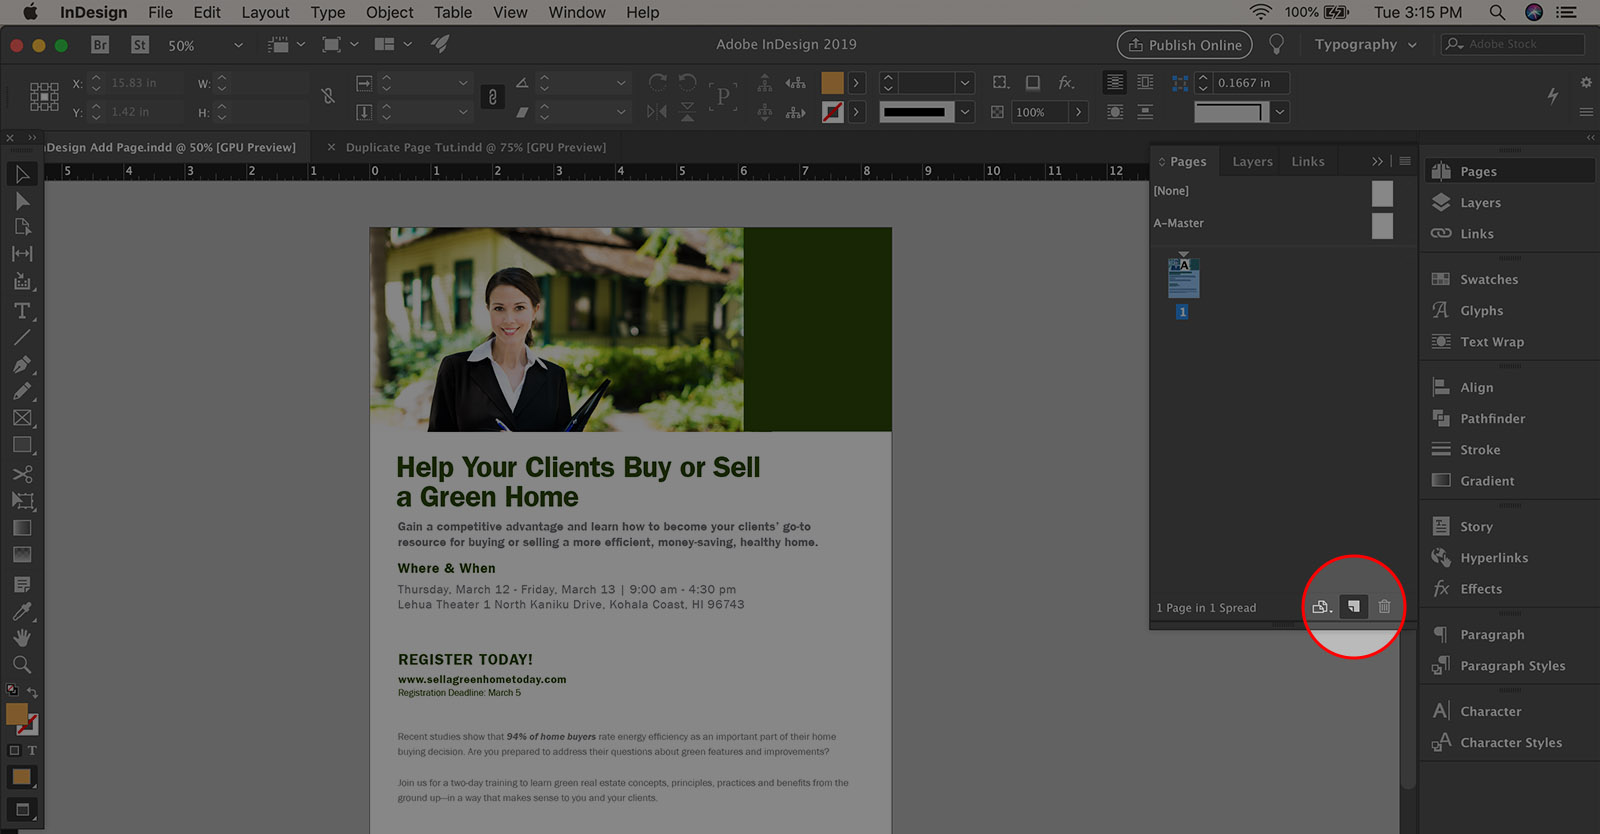 How to add a new page in InDesign